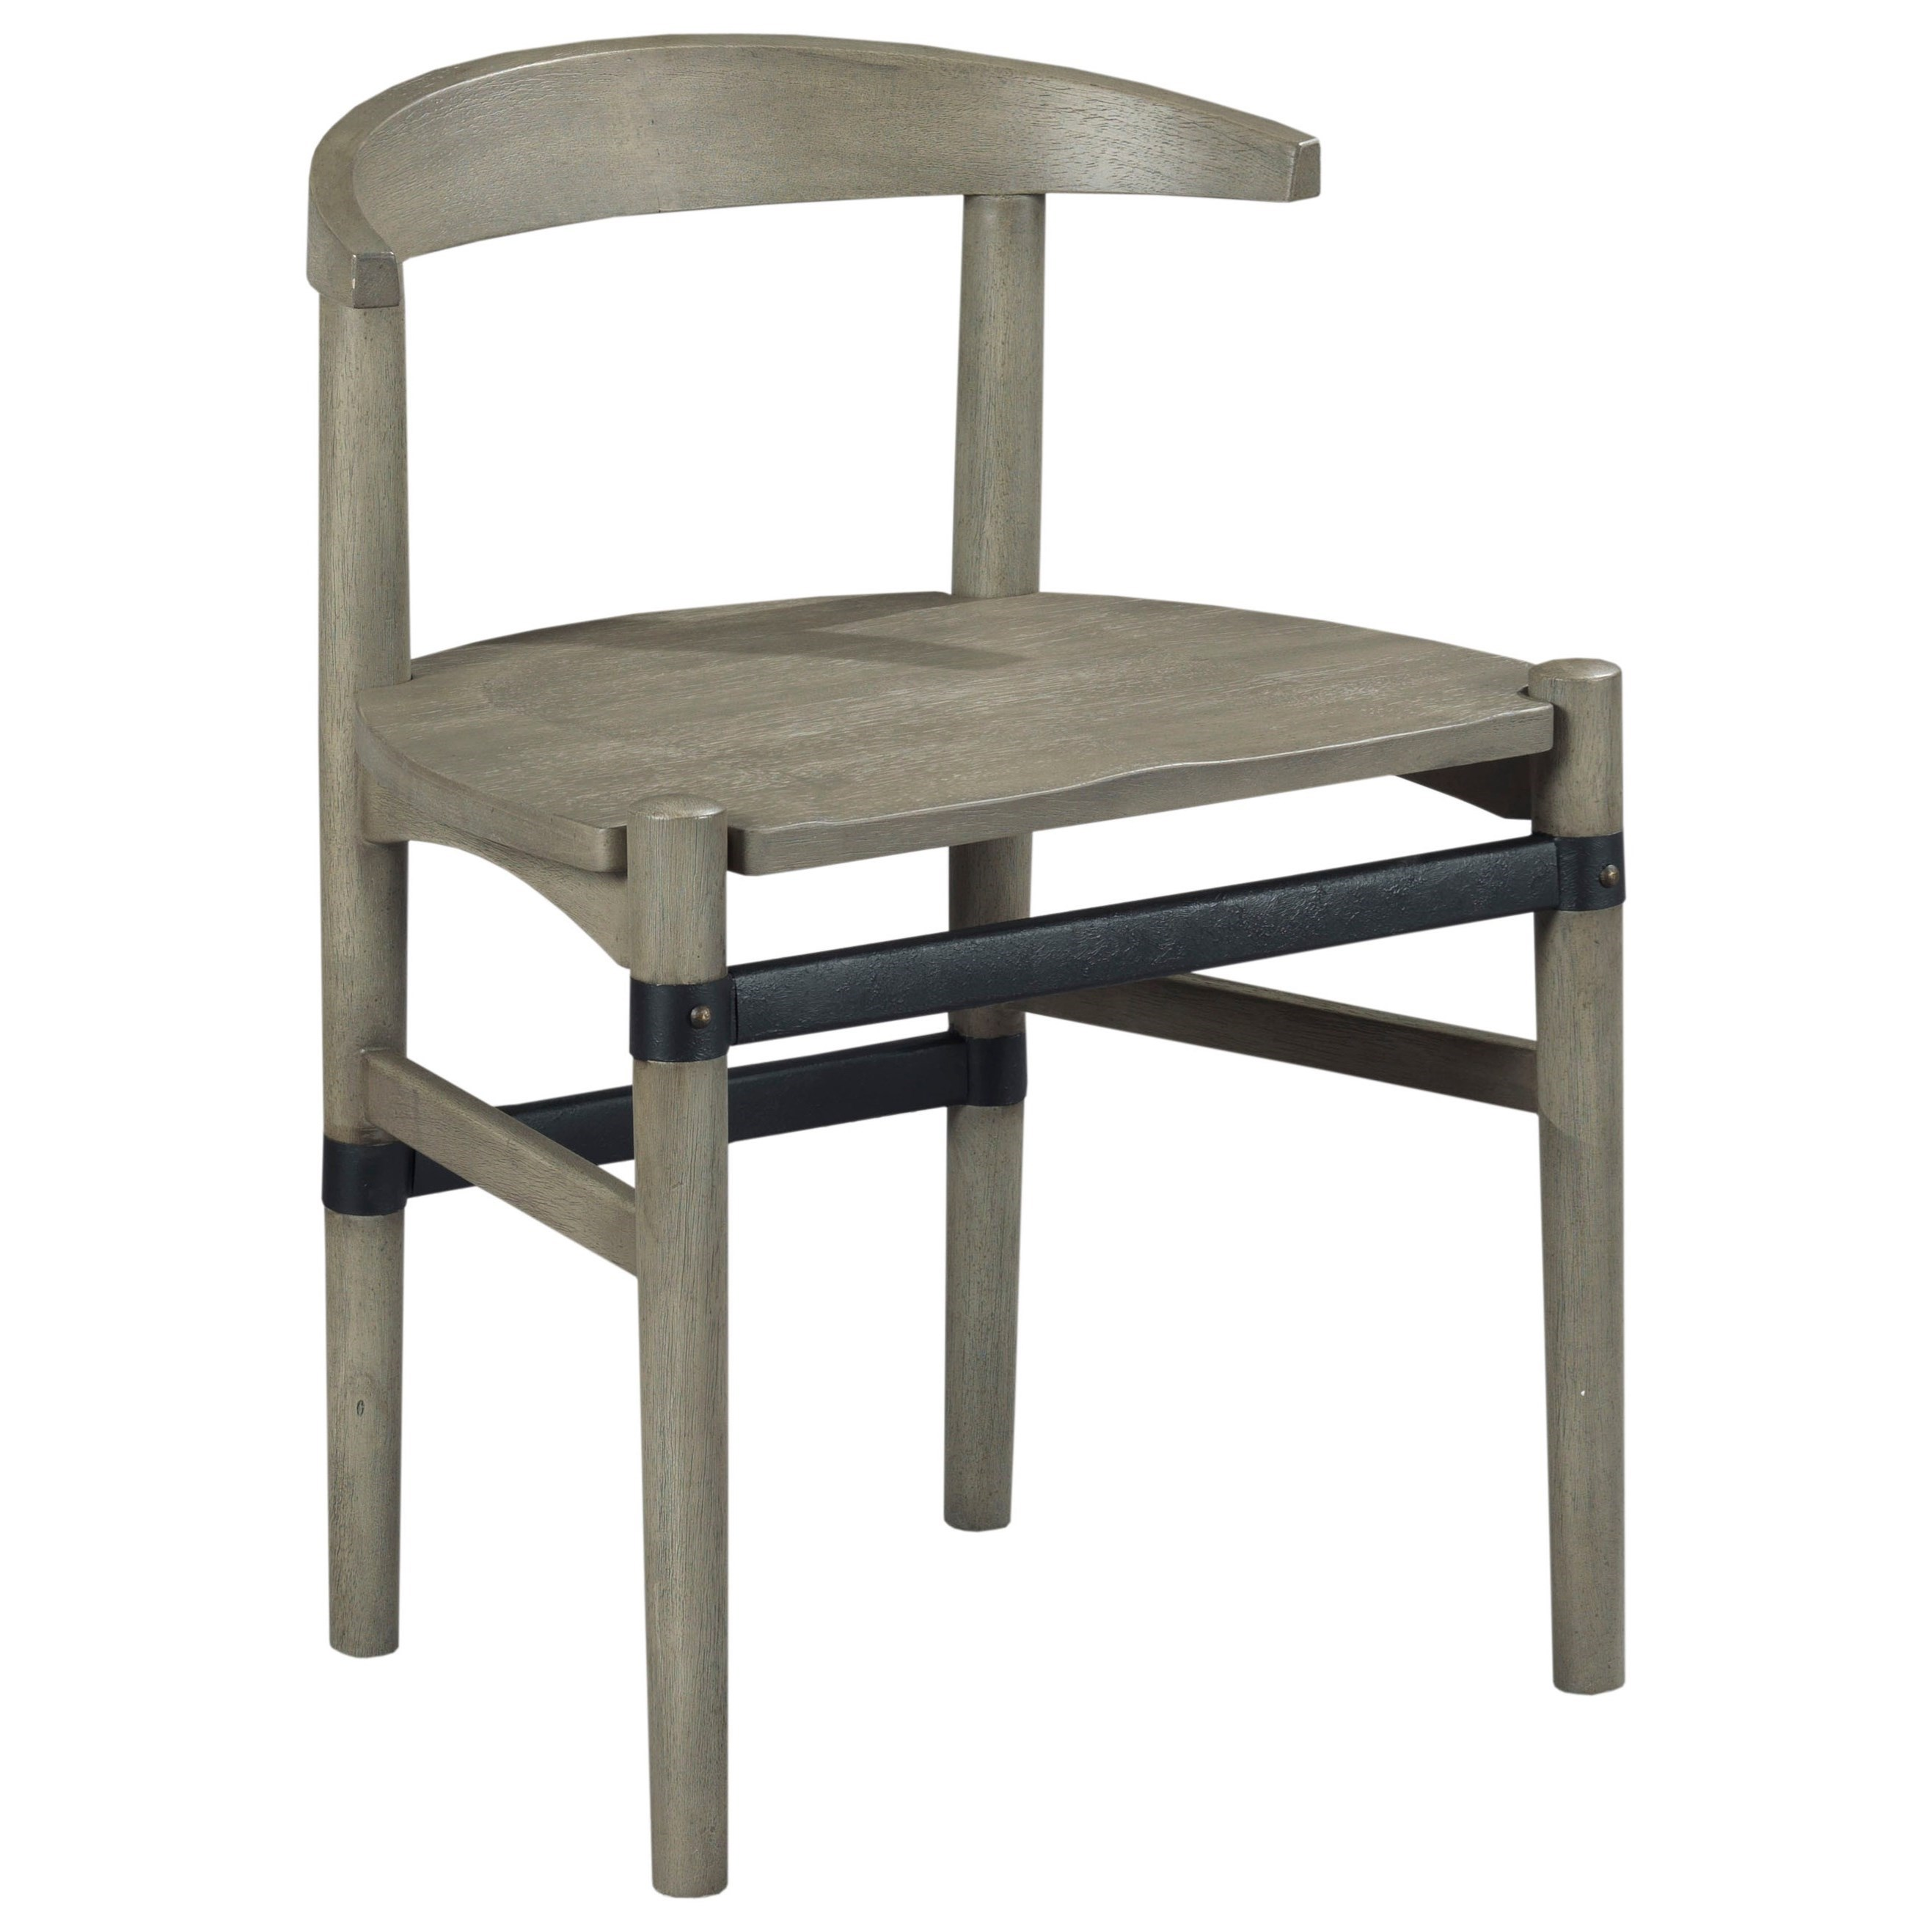 Hammary Junction Desk Chair - Item Number: 710-948